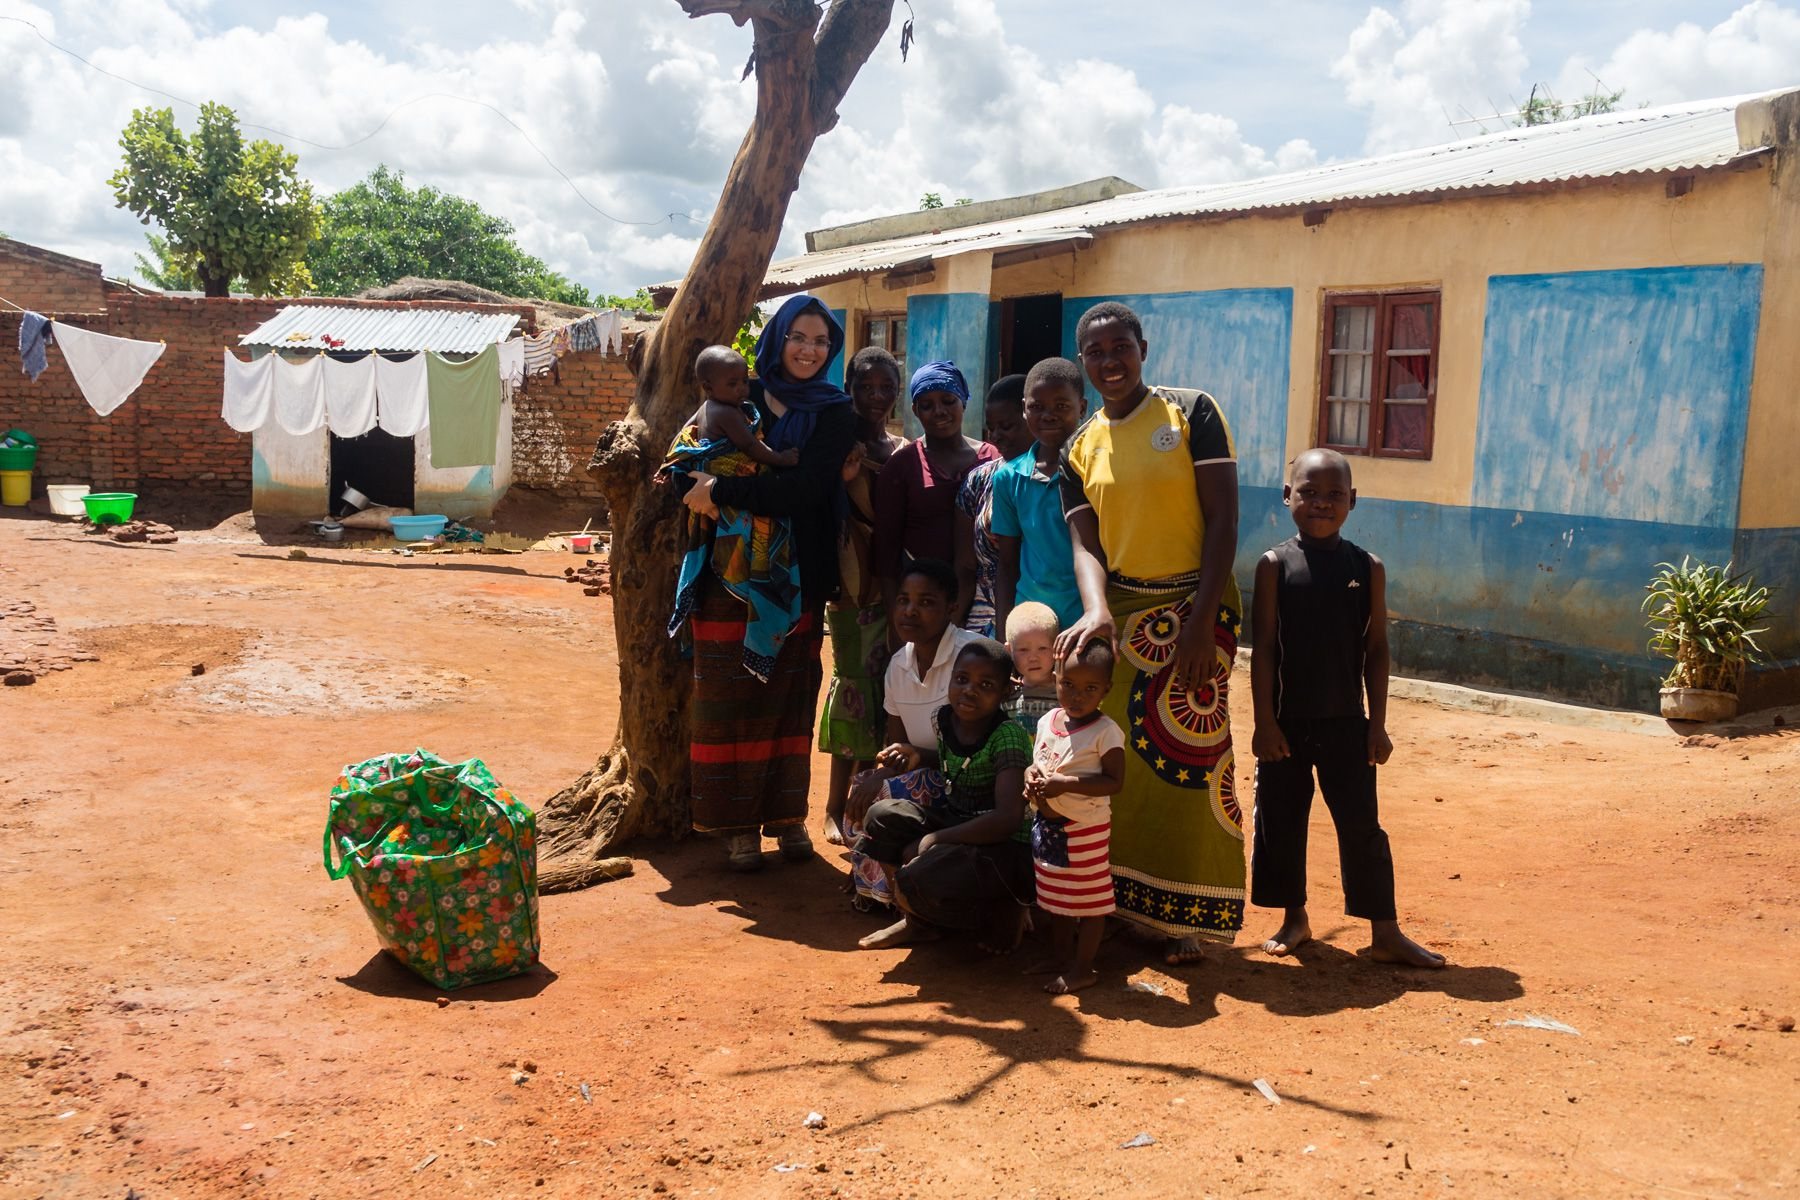 Soukaina and neighbors for the Mitundu village